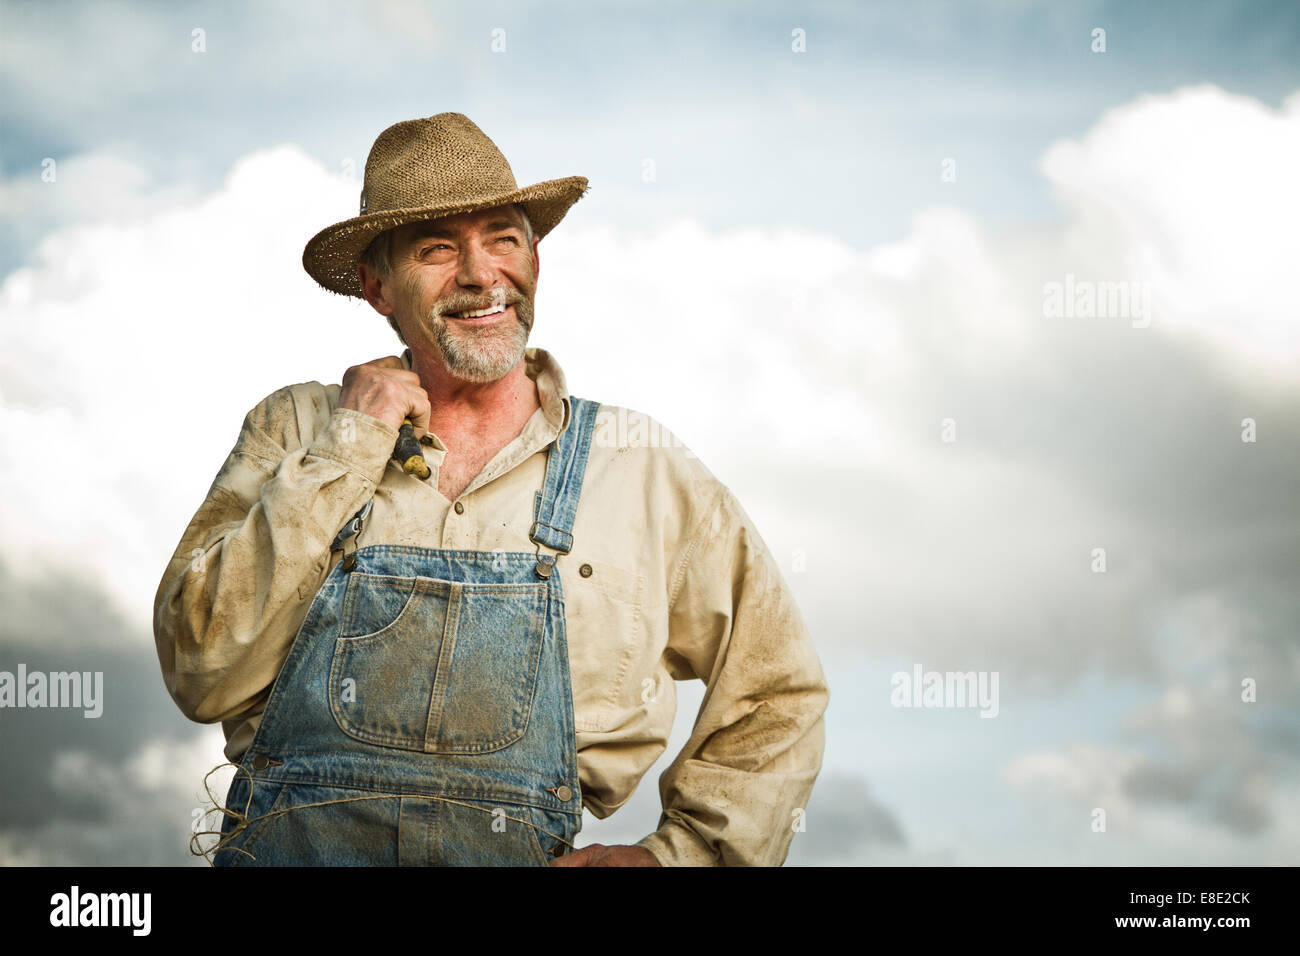 1930s farmer smiling at the Sun - Stock Image